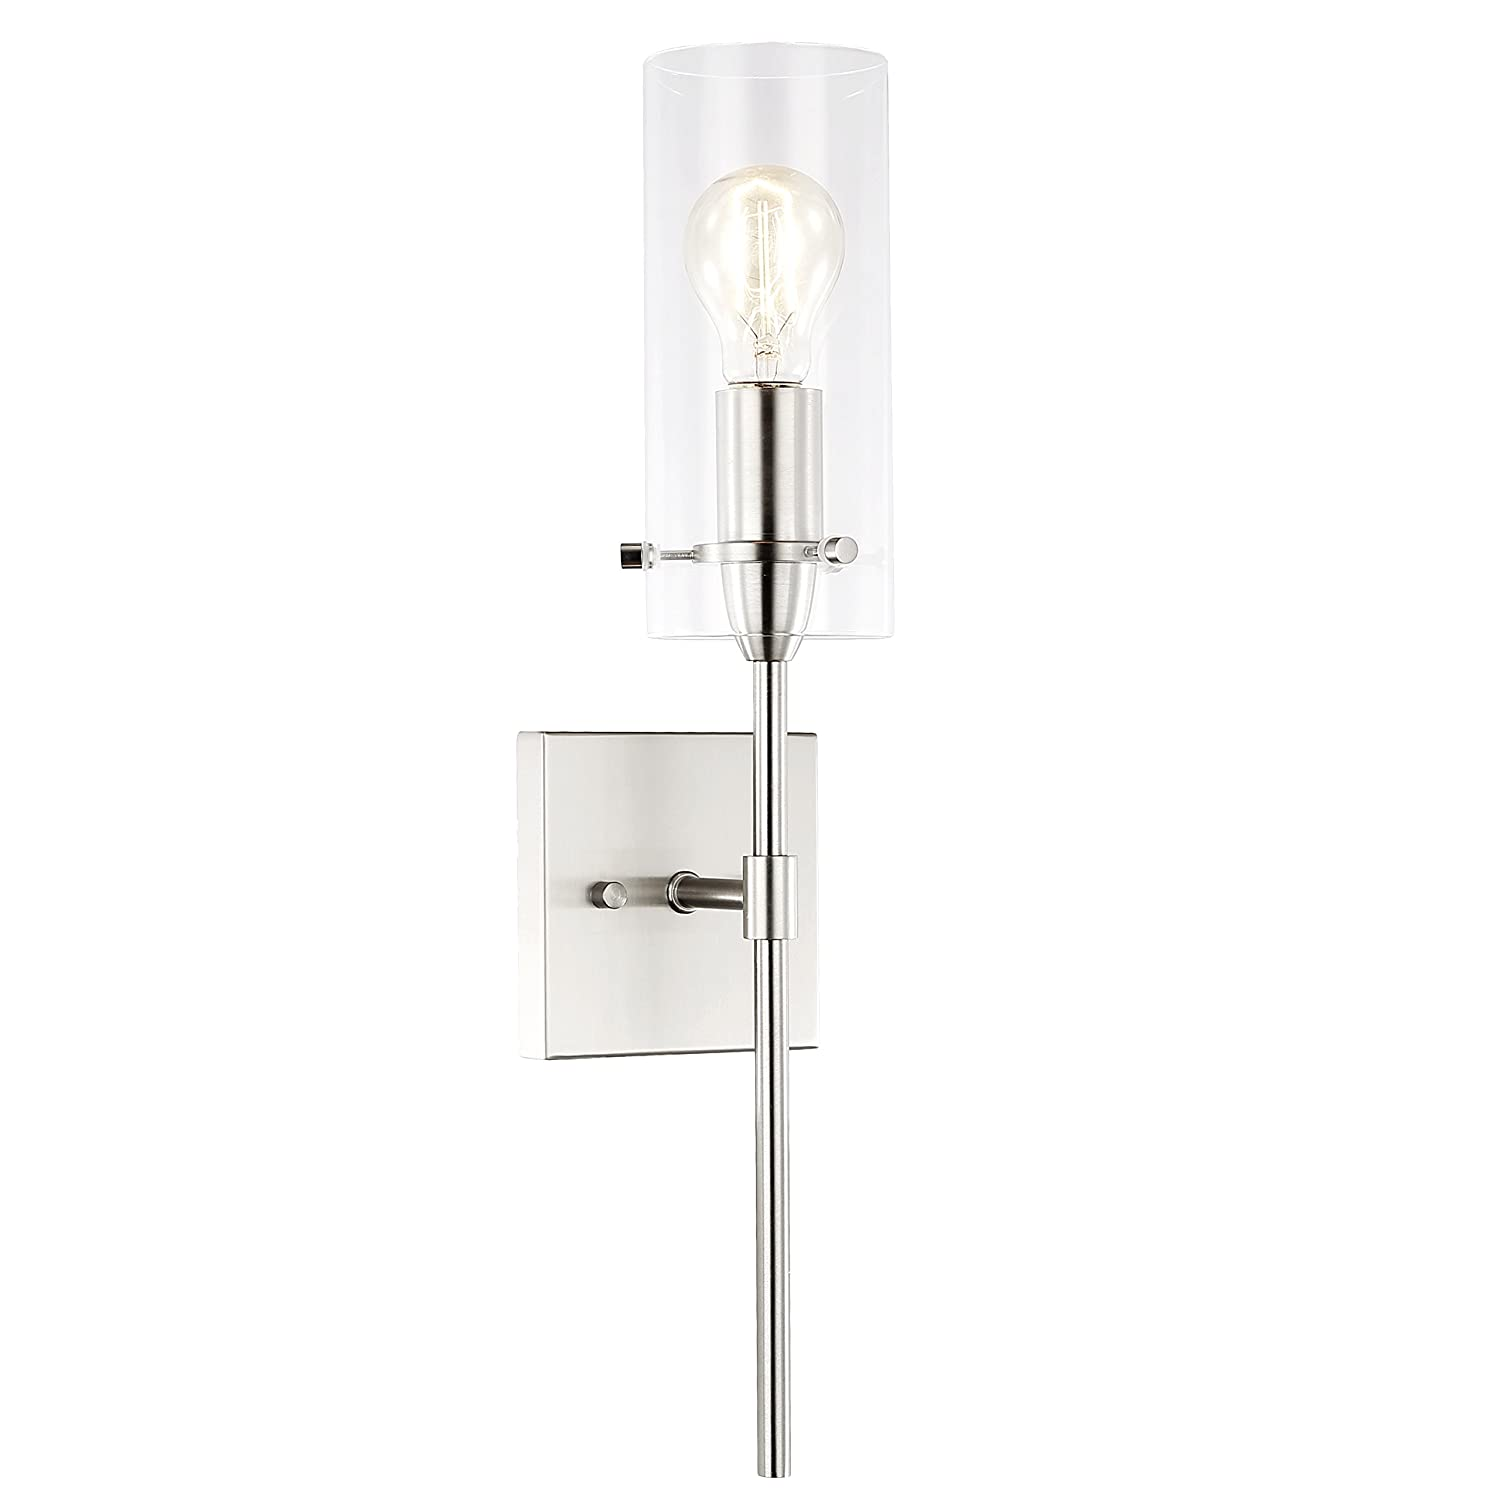 Light society montreal cylindrical wall sconce satin nickel with clear glass shade contemporary minimalist modern lighting fixture ls w238 sn cl